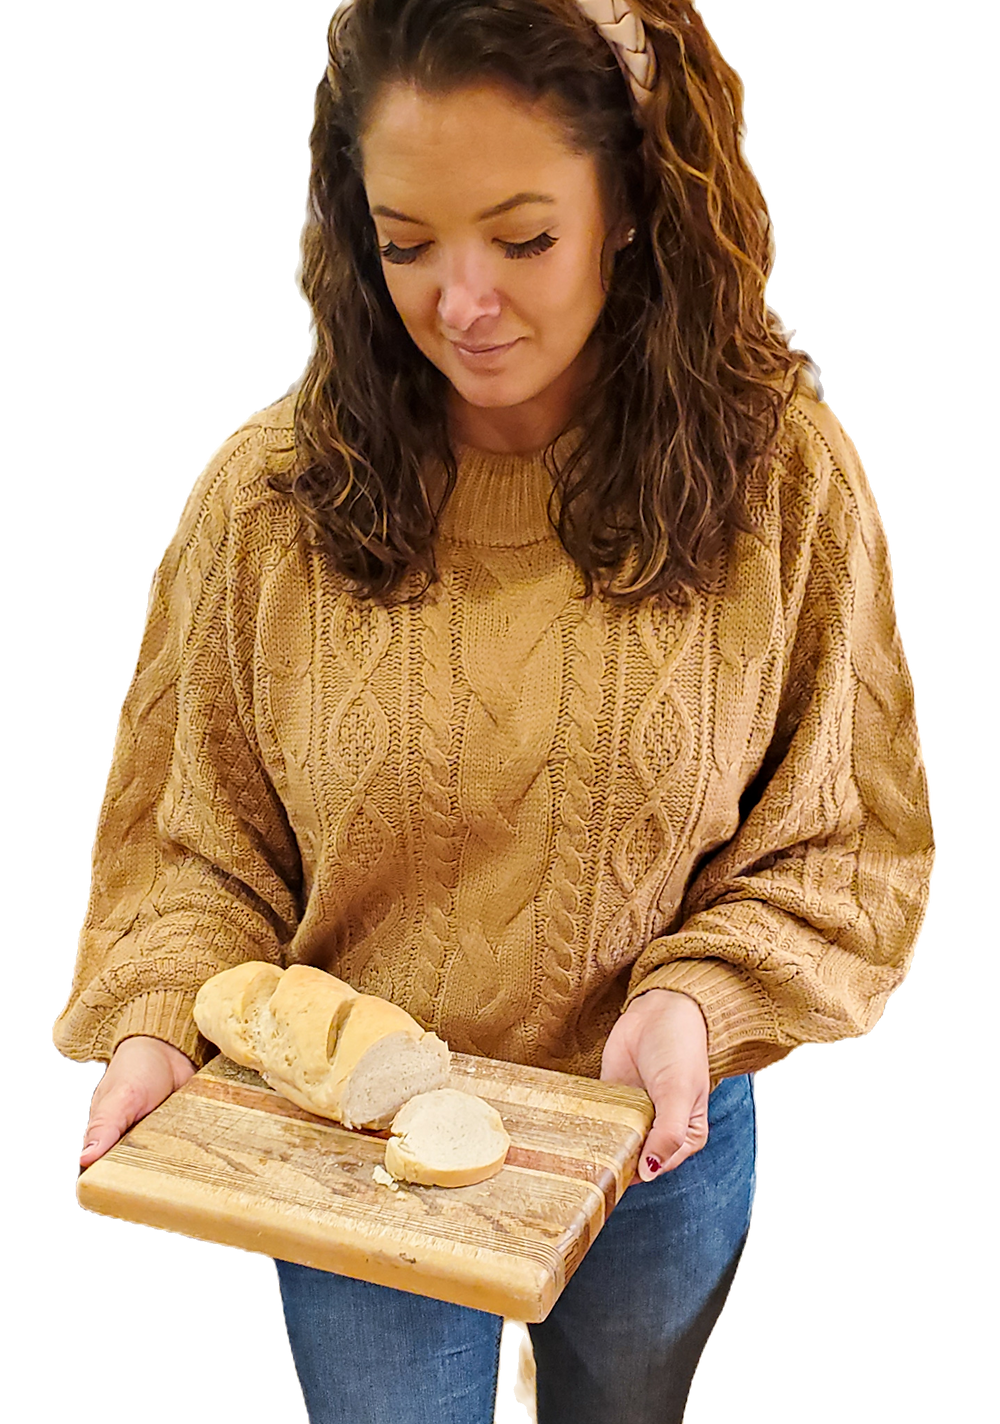 holding loaf of soft italian bread